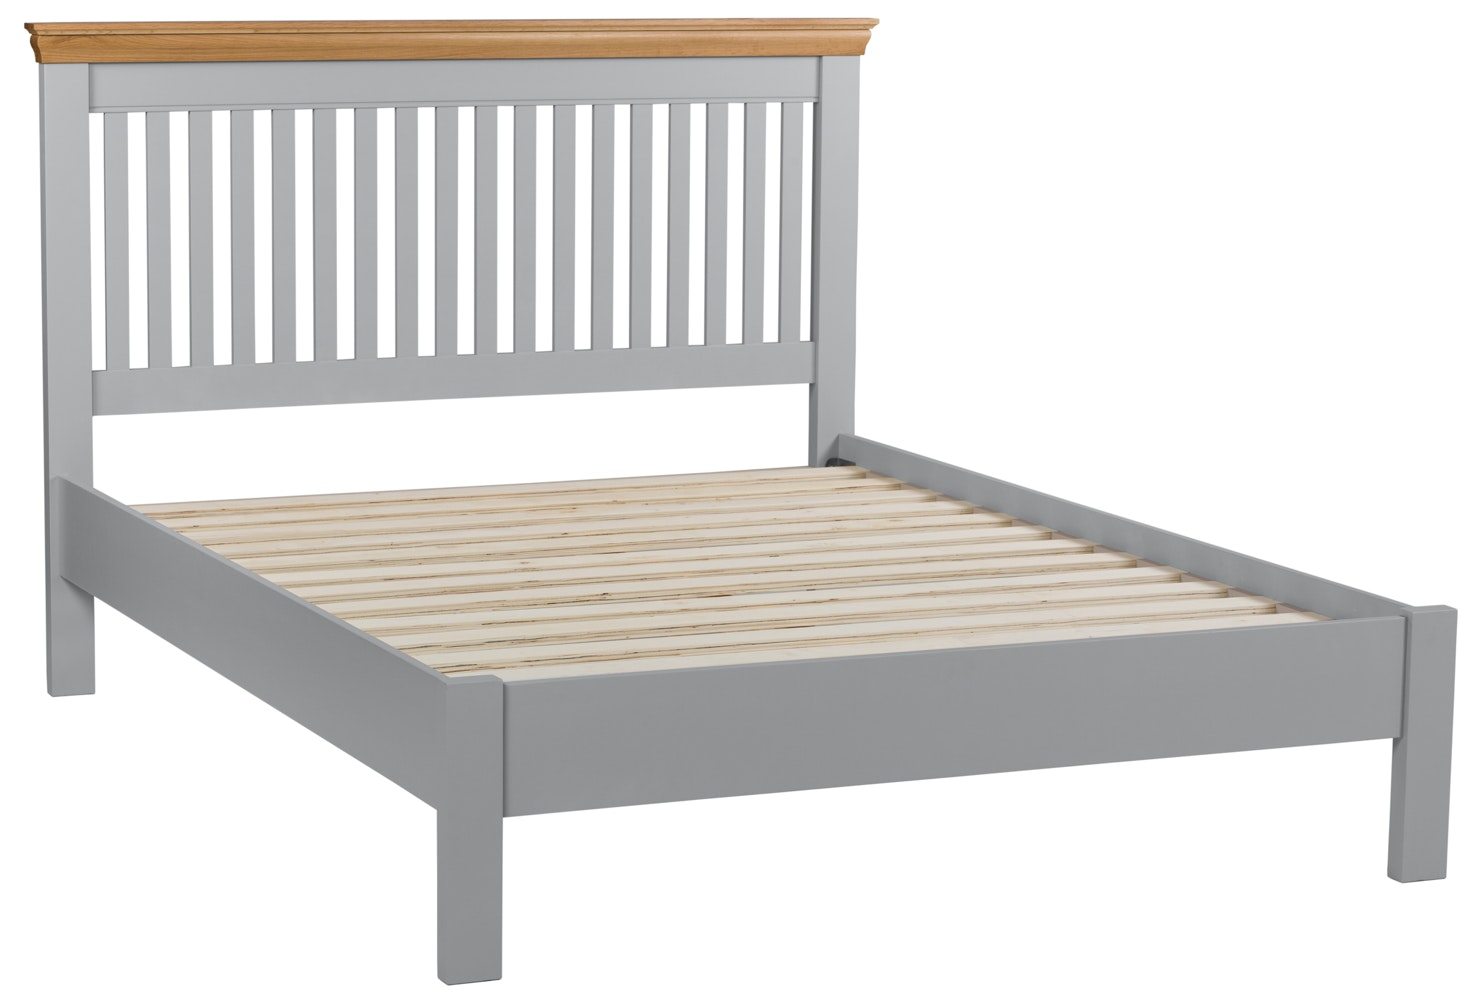 Ascott Bedframe | Colourtrend| 4ft6